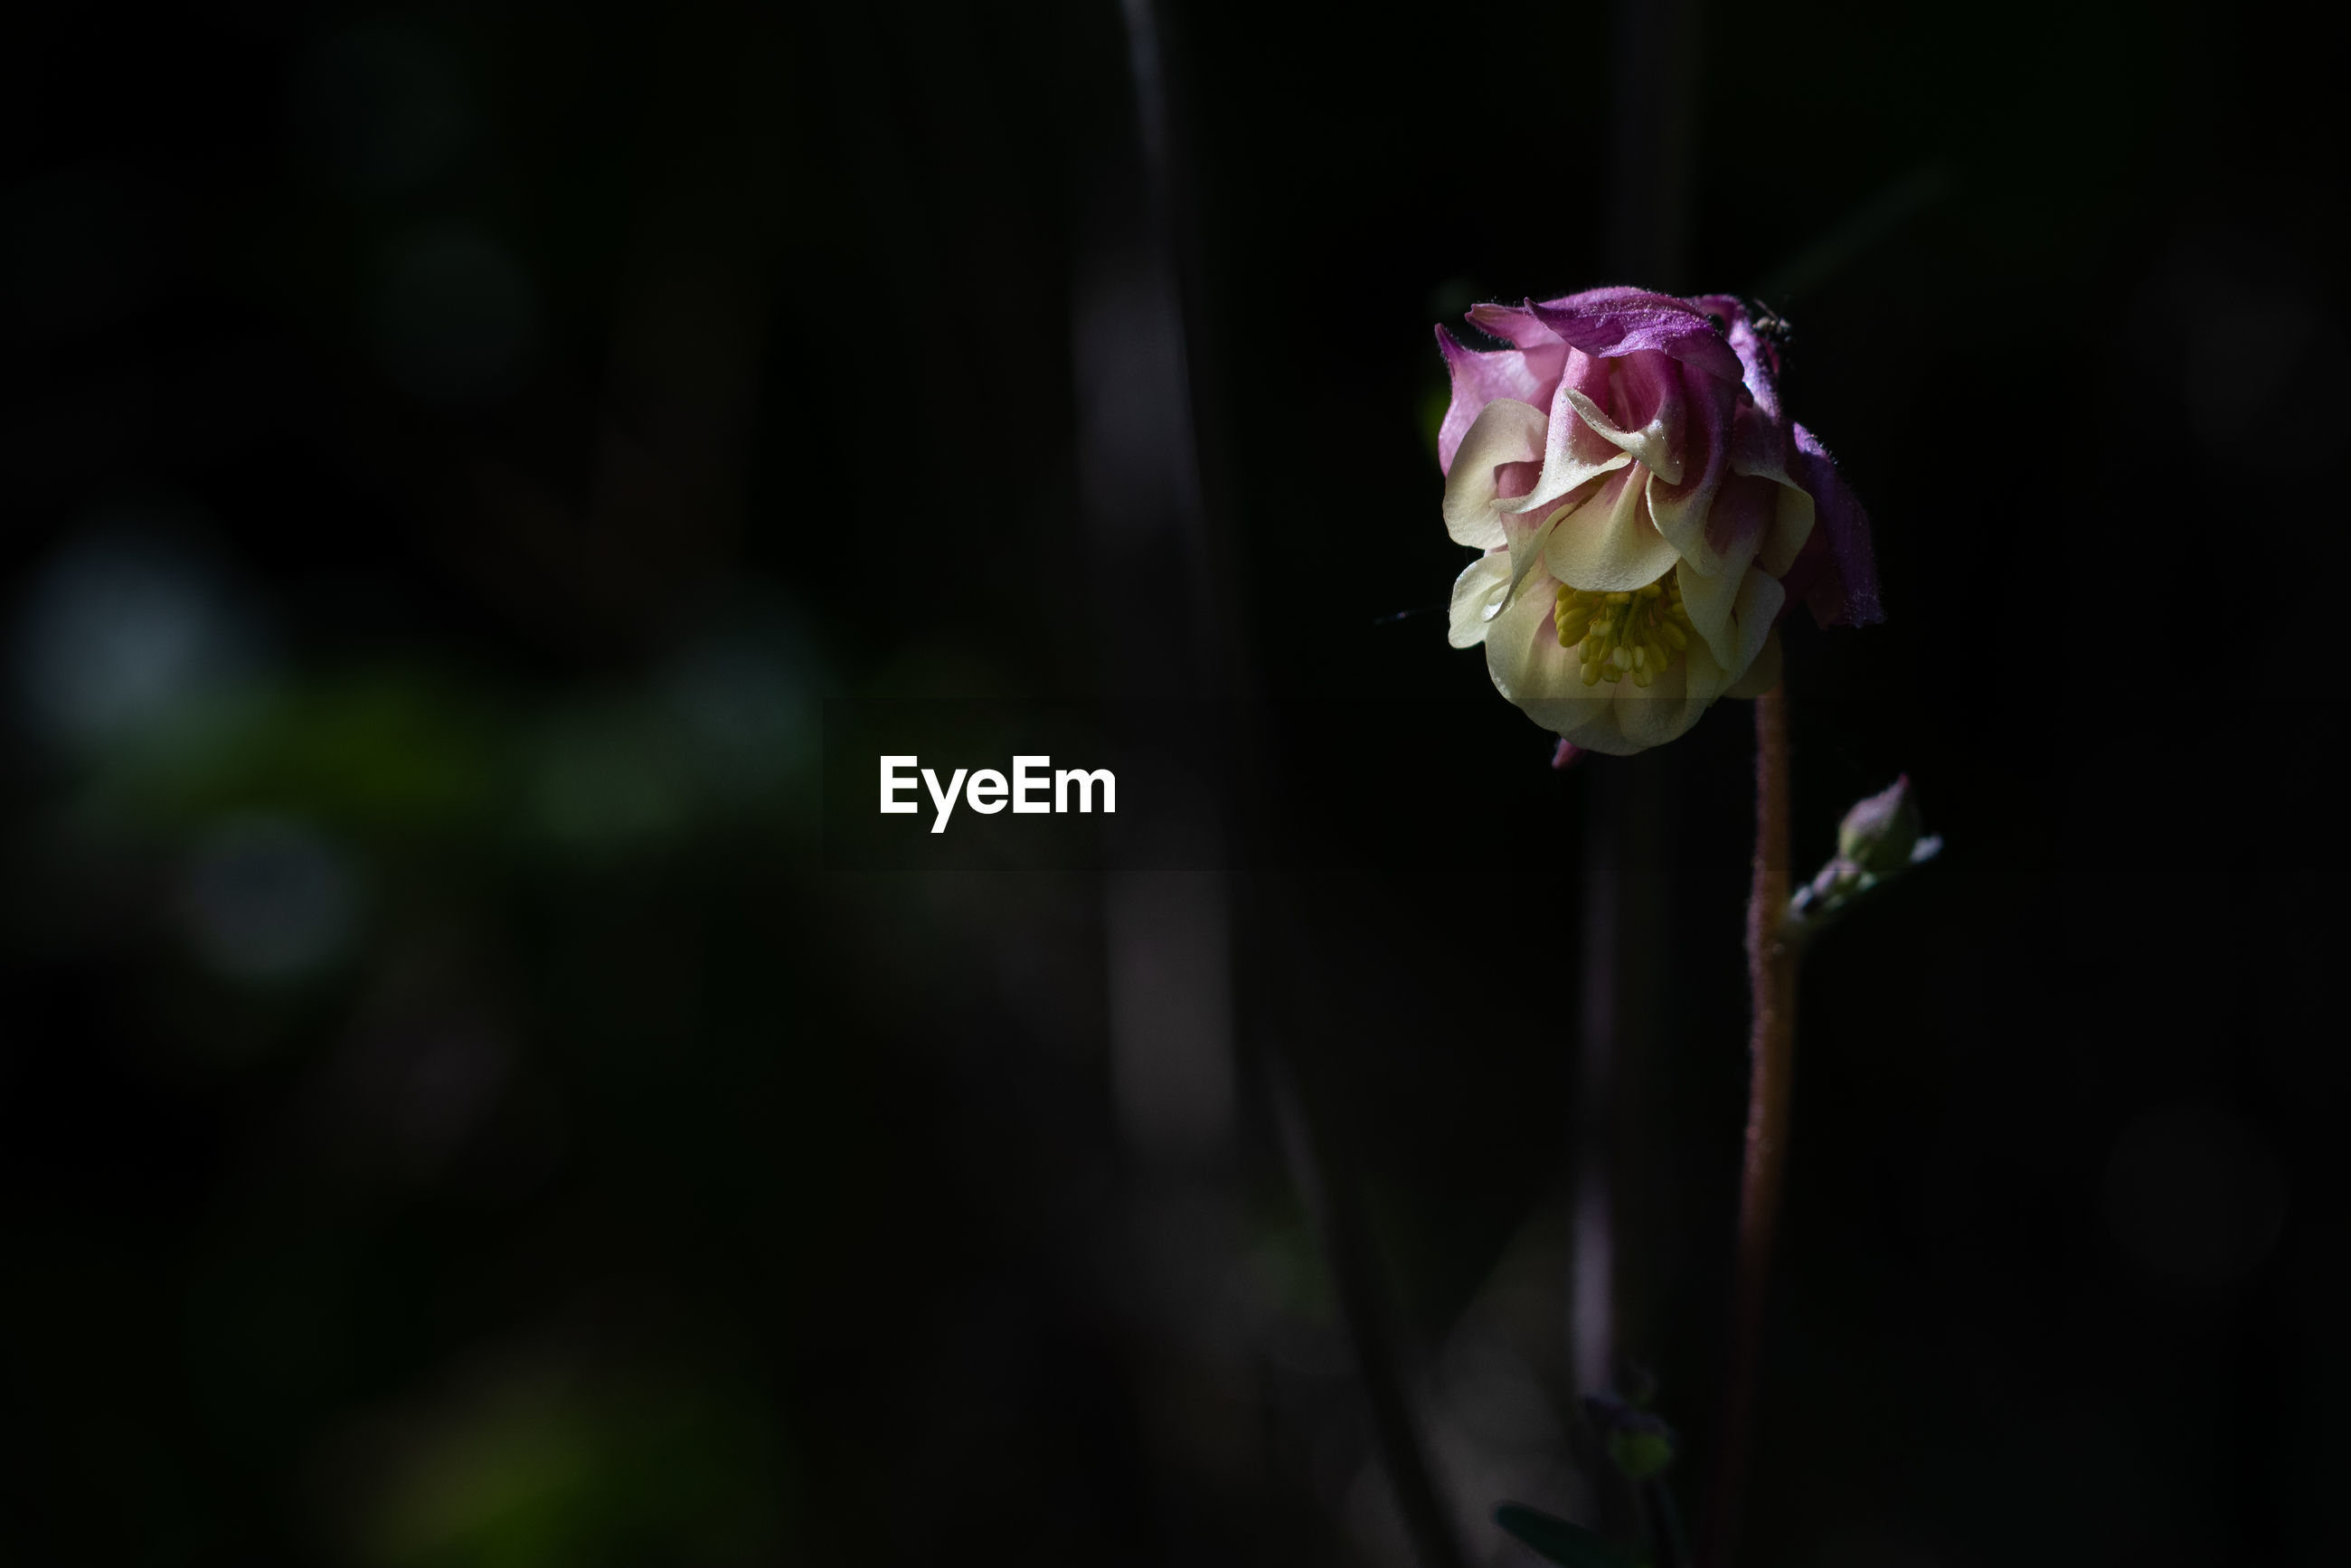 CLOSE-UP OF ROSE IN PLANT